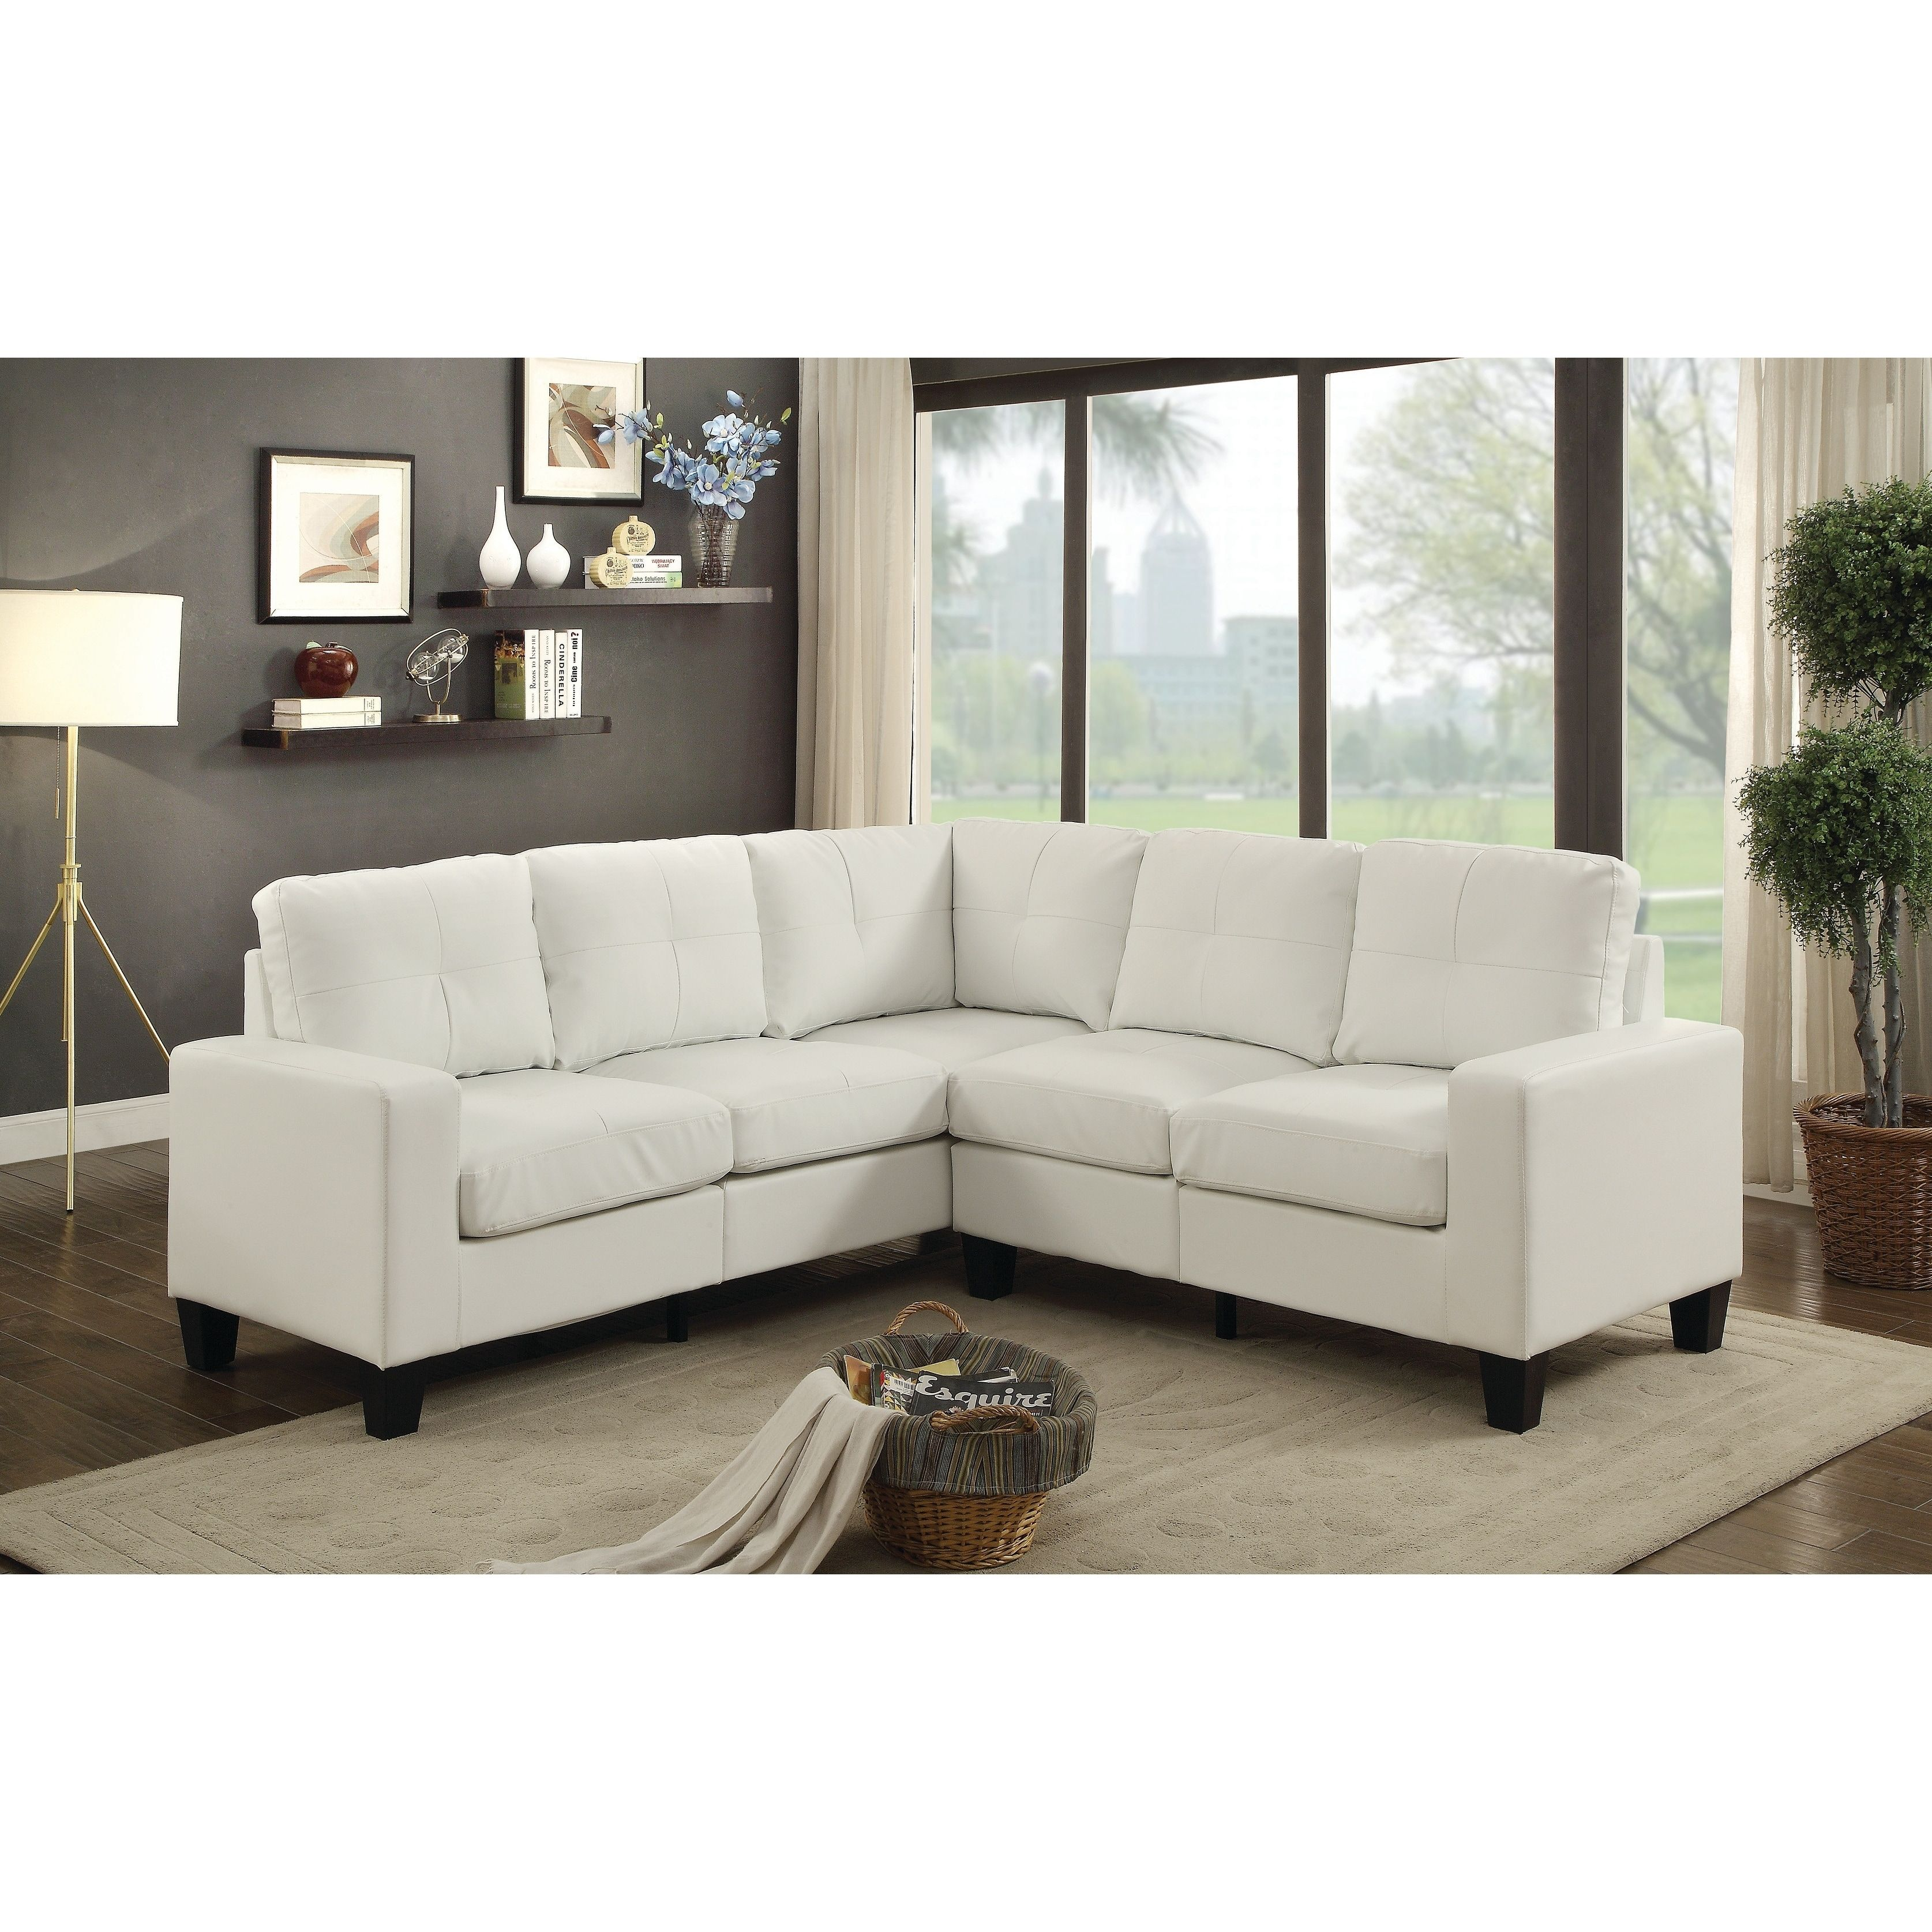 Pleasant Lyke Home Grey Faux Leather Sectional Products In 2019 Gamerscity Chair Design For Home Gamerscityorg